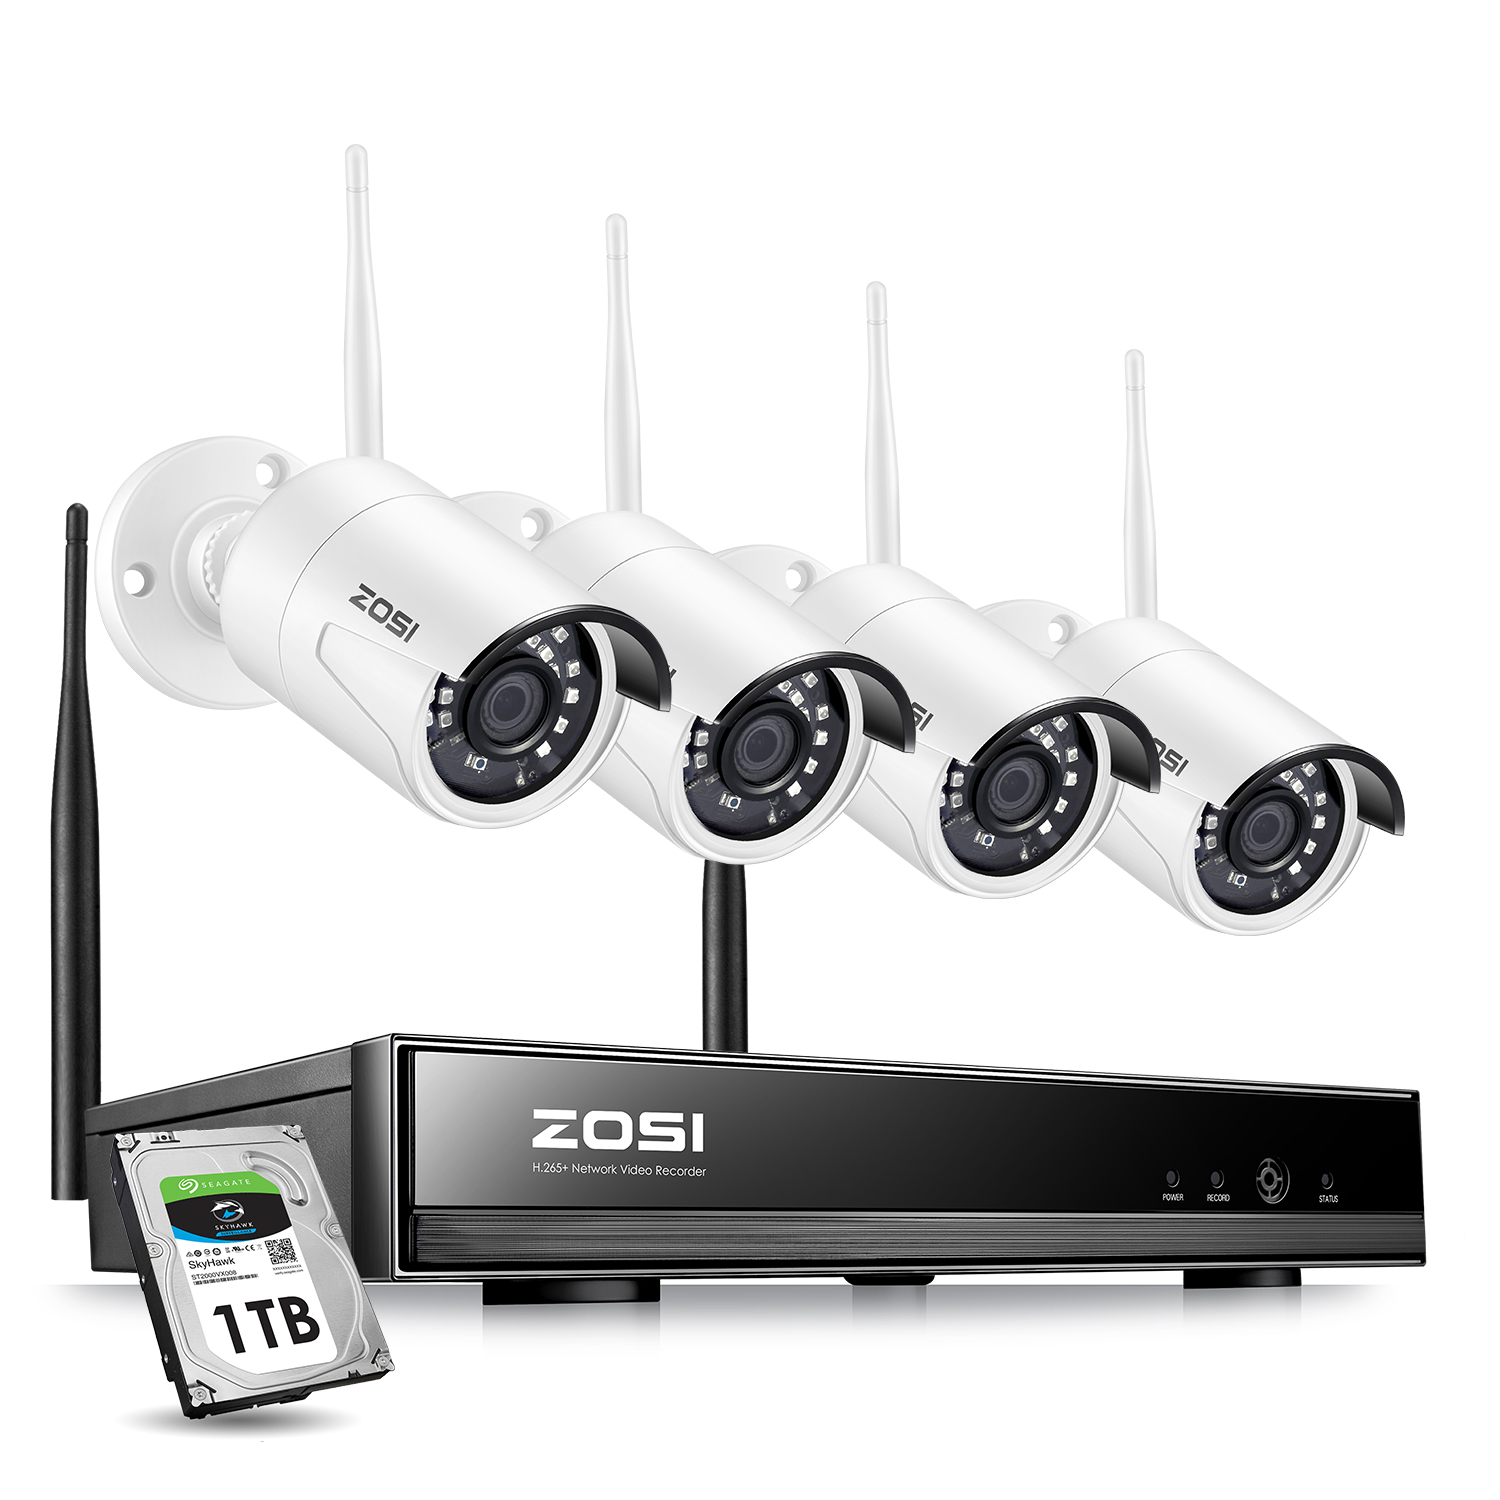 ZOSI 8 Channel Wifi NVR 1080p HD Wireless Outdoor Security IP Camera  Channel Nvr Wiring Diagrams on nci wiring diagram, dell wiring diagram, category 6 cable wiring diagram, ip camera wiring diagram, accessories wiring diagram, pc wiring diagram, dvr wiring diagram, hd wiring diagram, nst wiring diagram, switch wiring diagram, nac wiring diagram, poe wiring diagram, cctv wiring diagram, ups wiring diagram, sony wiring diagram, software wiring diagram, power over ethernet wiring diagram, lennar wiring diagram, box camera wiring diagram, ge wiring diagram,